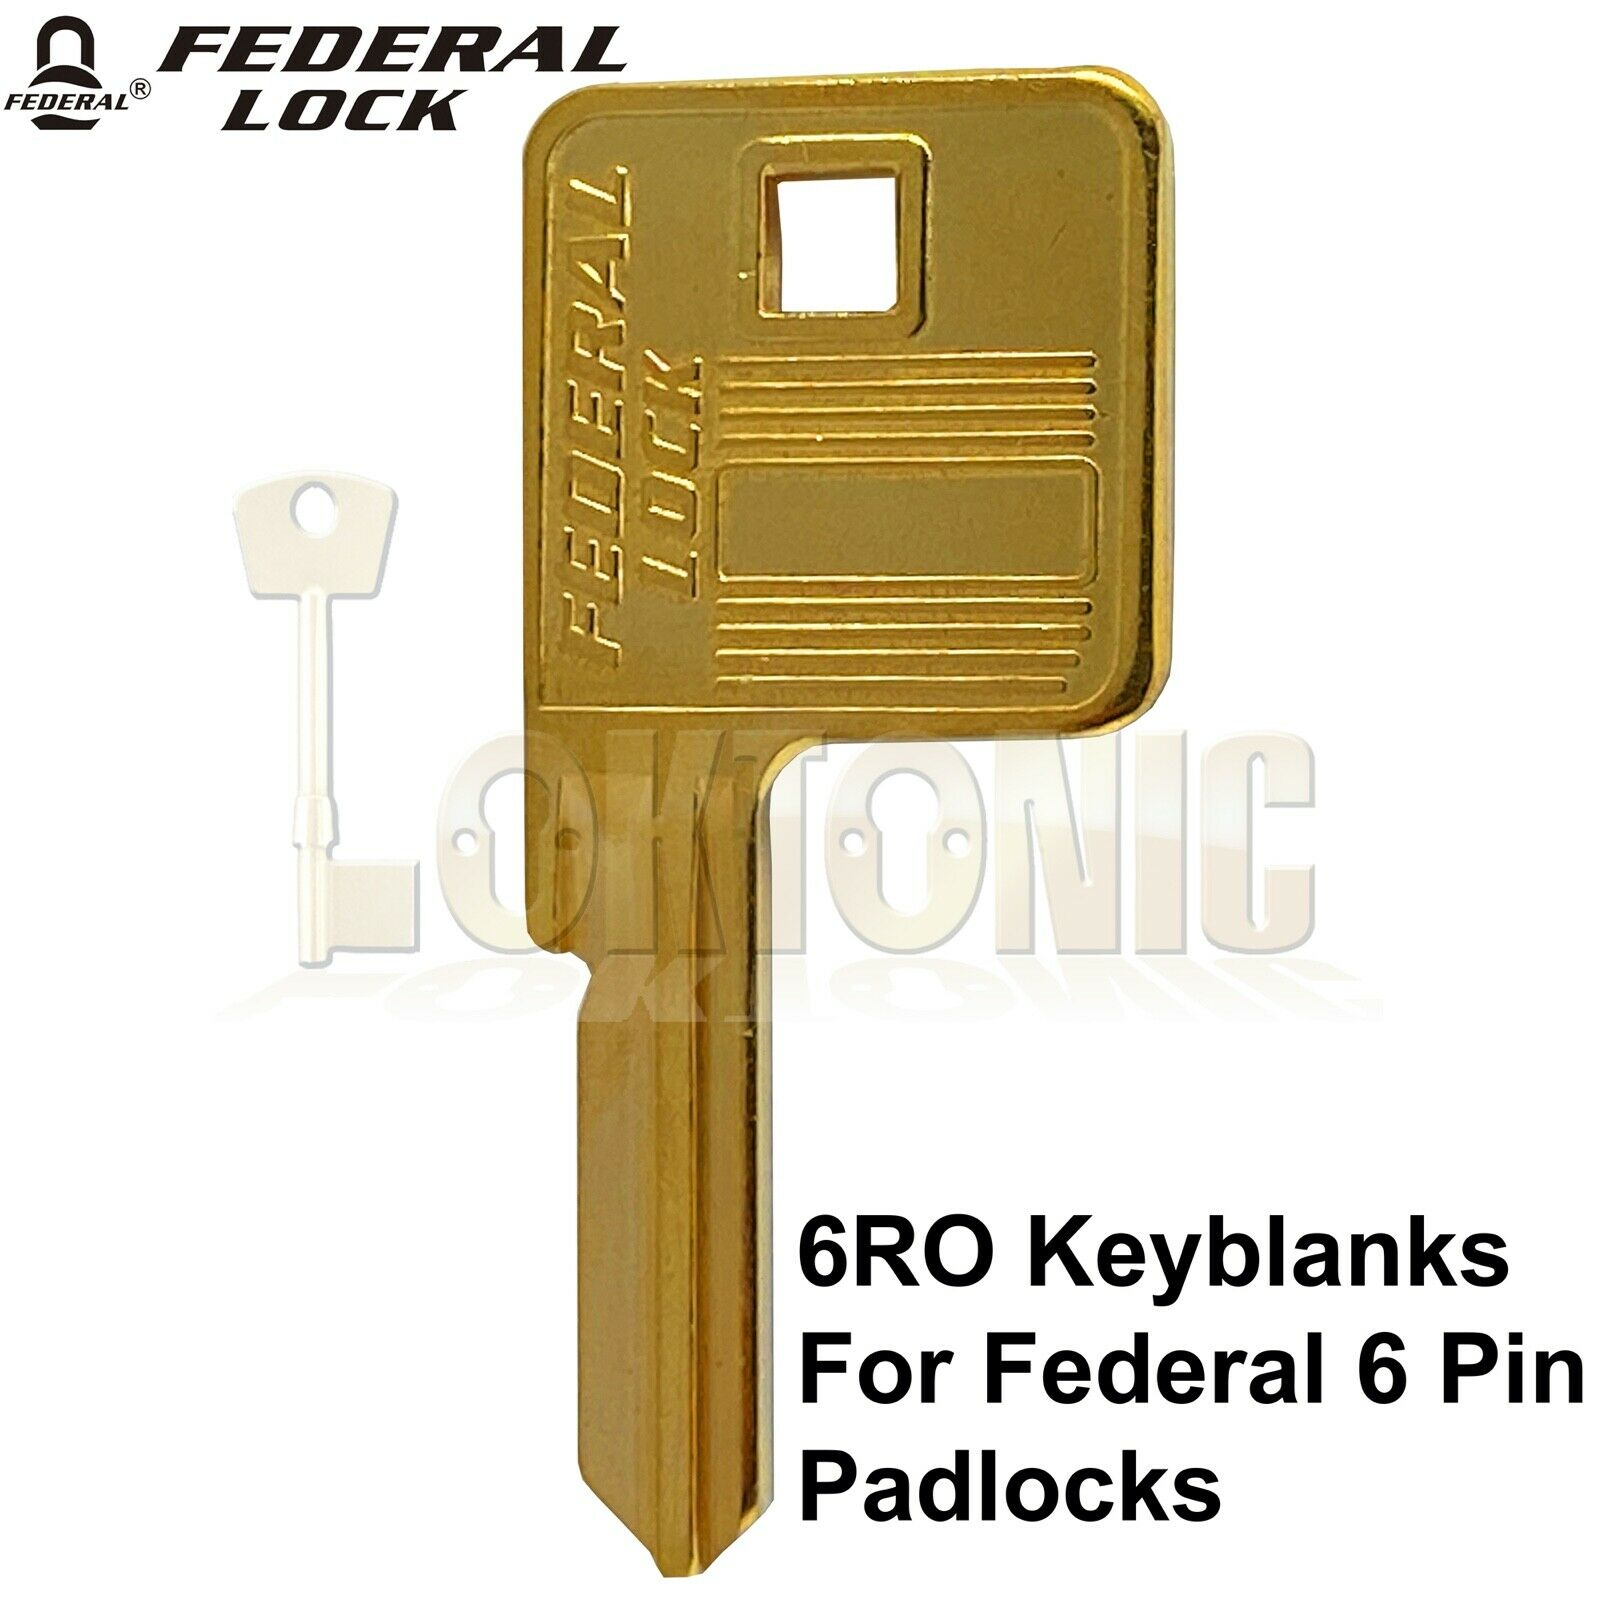 Federal Genuine FDKB6 6RO Key Blanks To Fit Any 6 pin ...